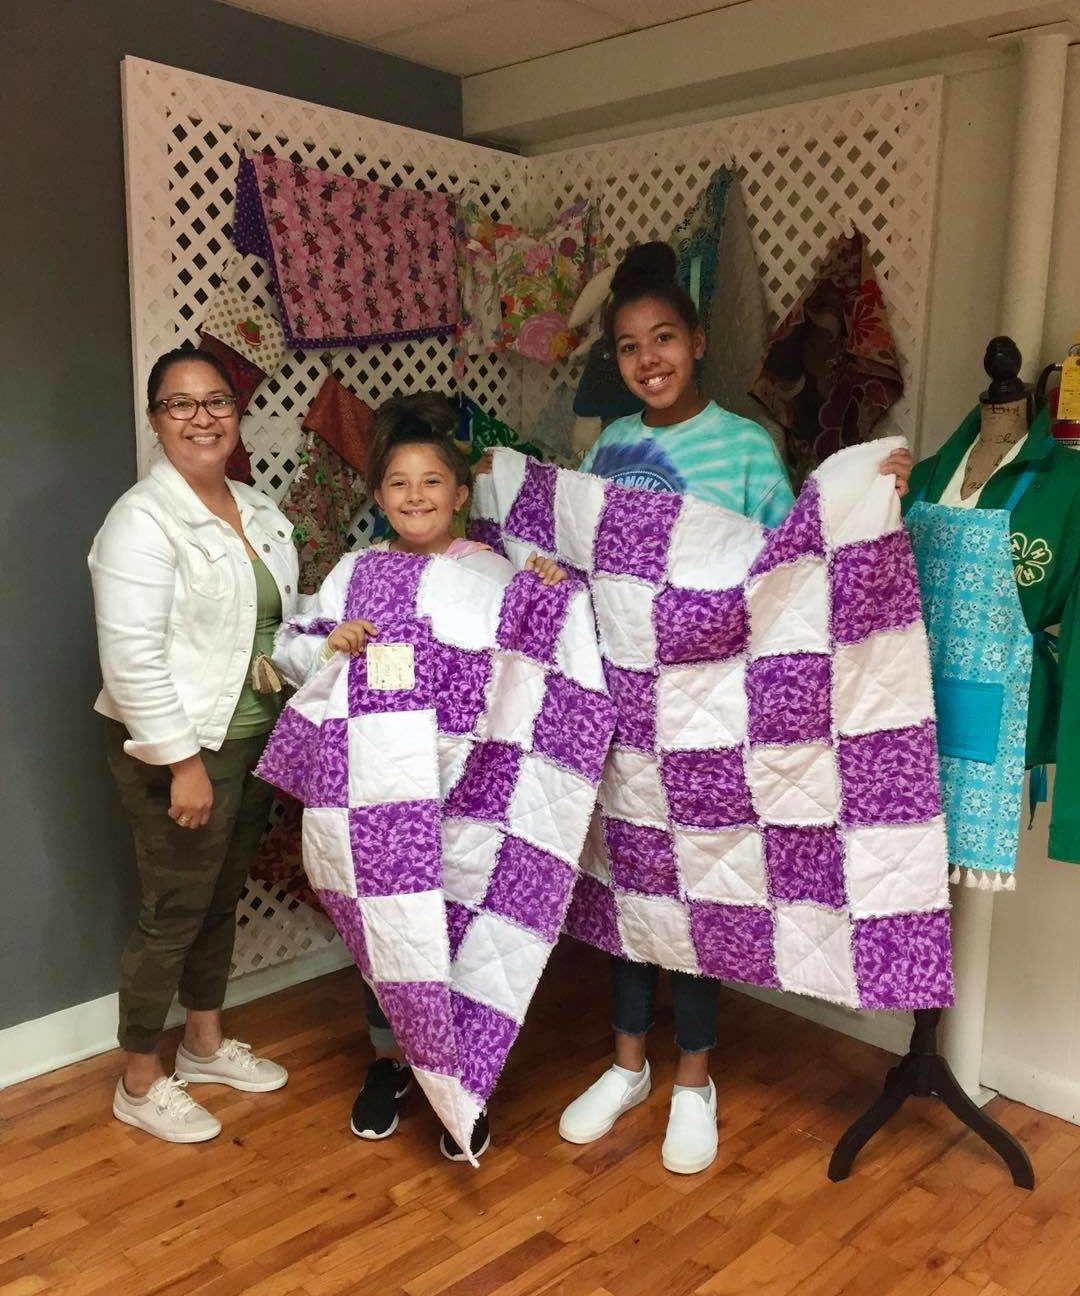 4H students displaying their completed quilts